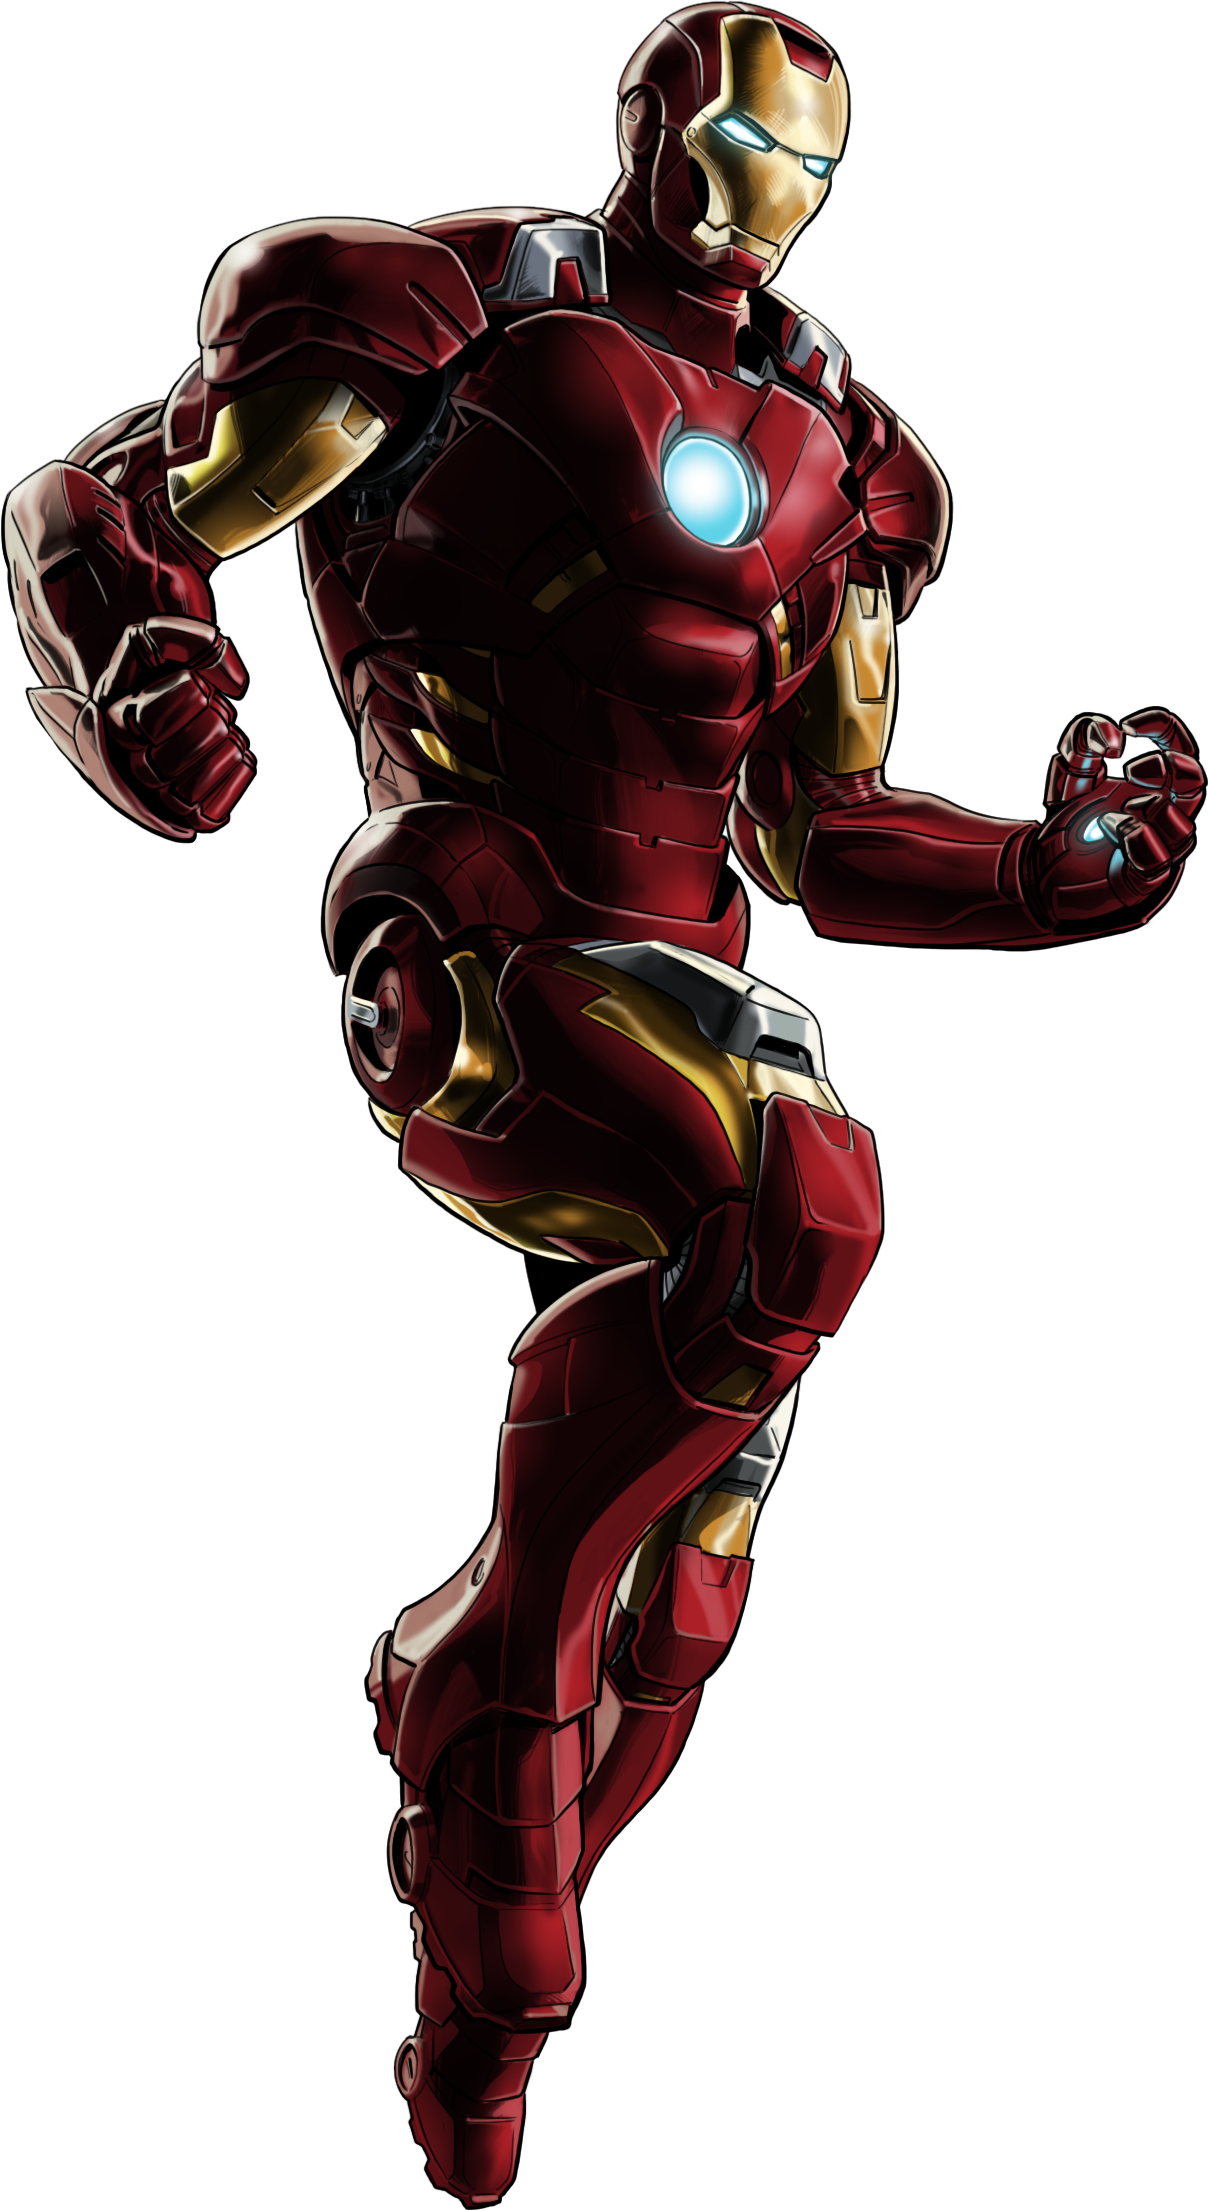 Marvel character clipart on transparent background jpg free stock Iron Man PNG Transparent Images | PNG All jpg free stock